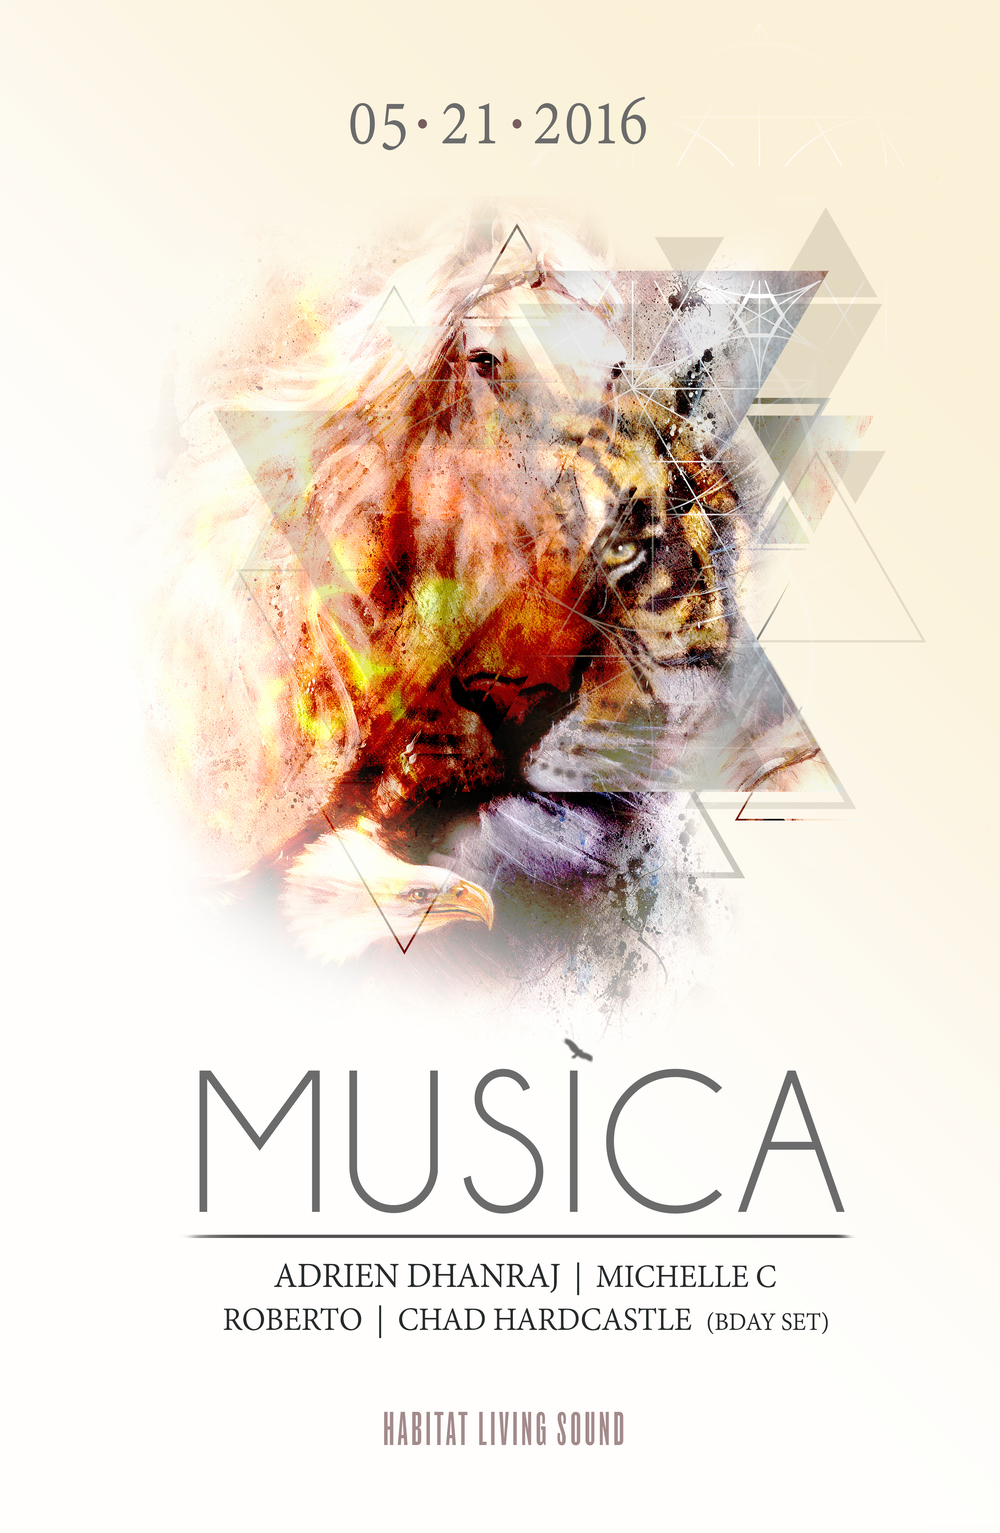 Musica-habitat-living-sound.jpeg